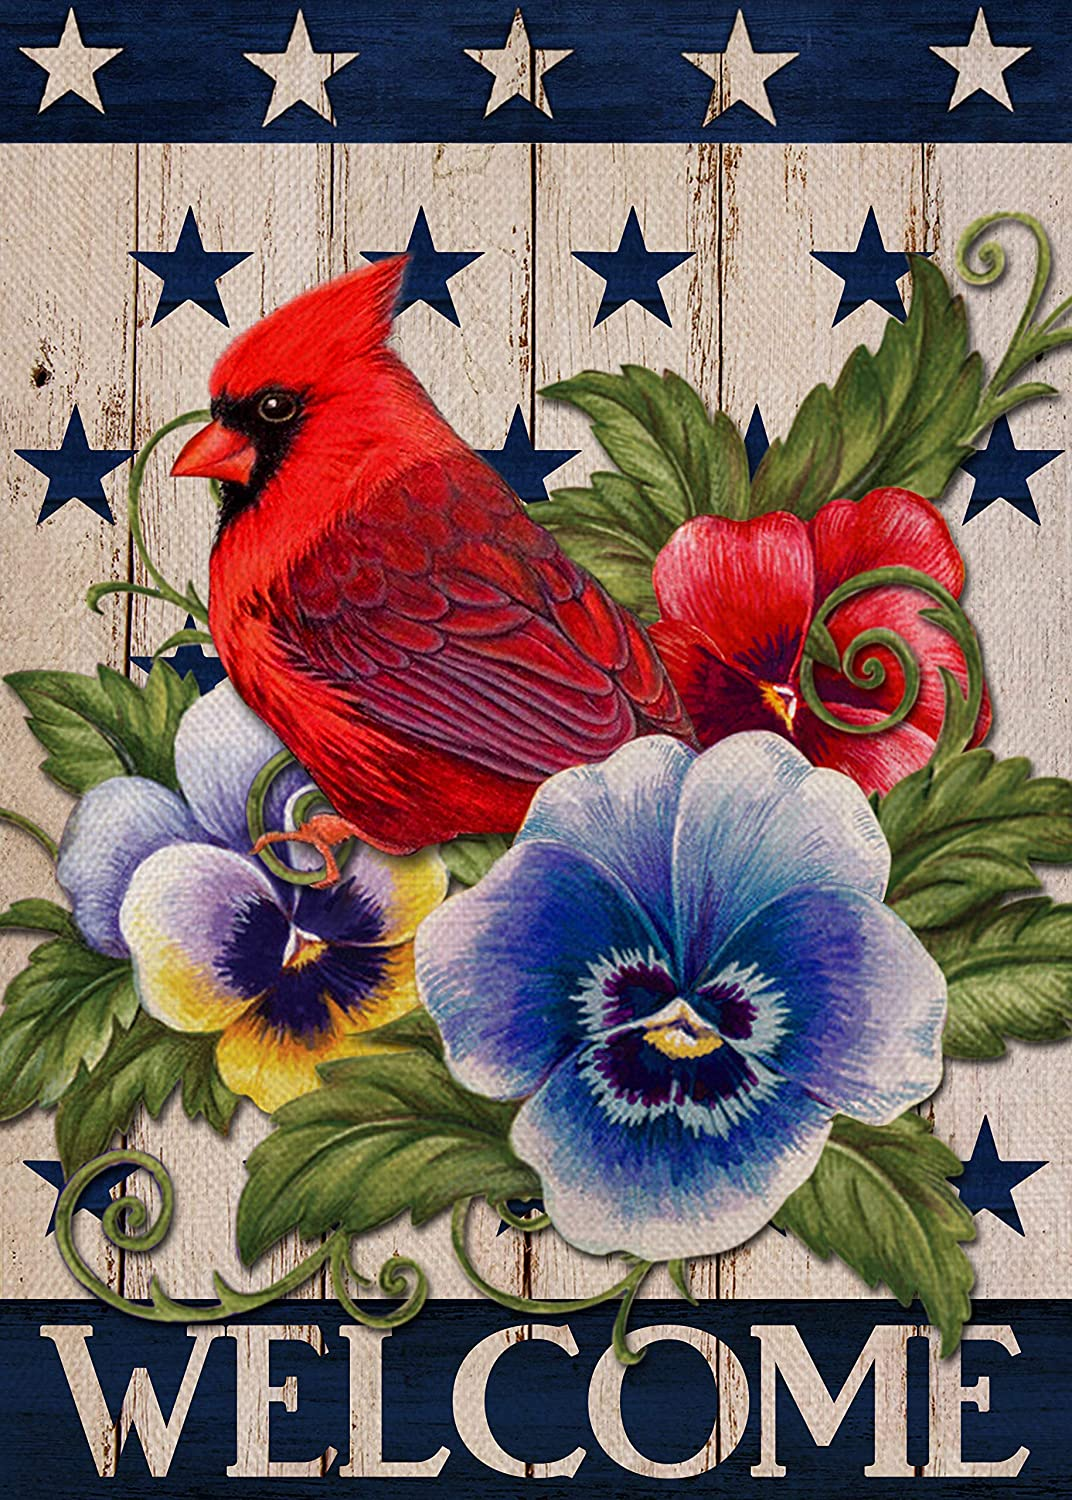 Covido Home Decorative Welcome Cardinal Garden Flag, American Spring House Yard Lawn Red Bird Pansies Flower Decor, USA Patriotic Outside Star Decoration July 4th Outdoor Small Flag Double Sided 12x18